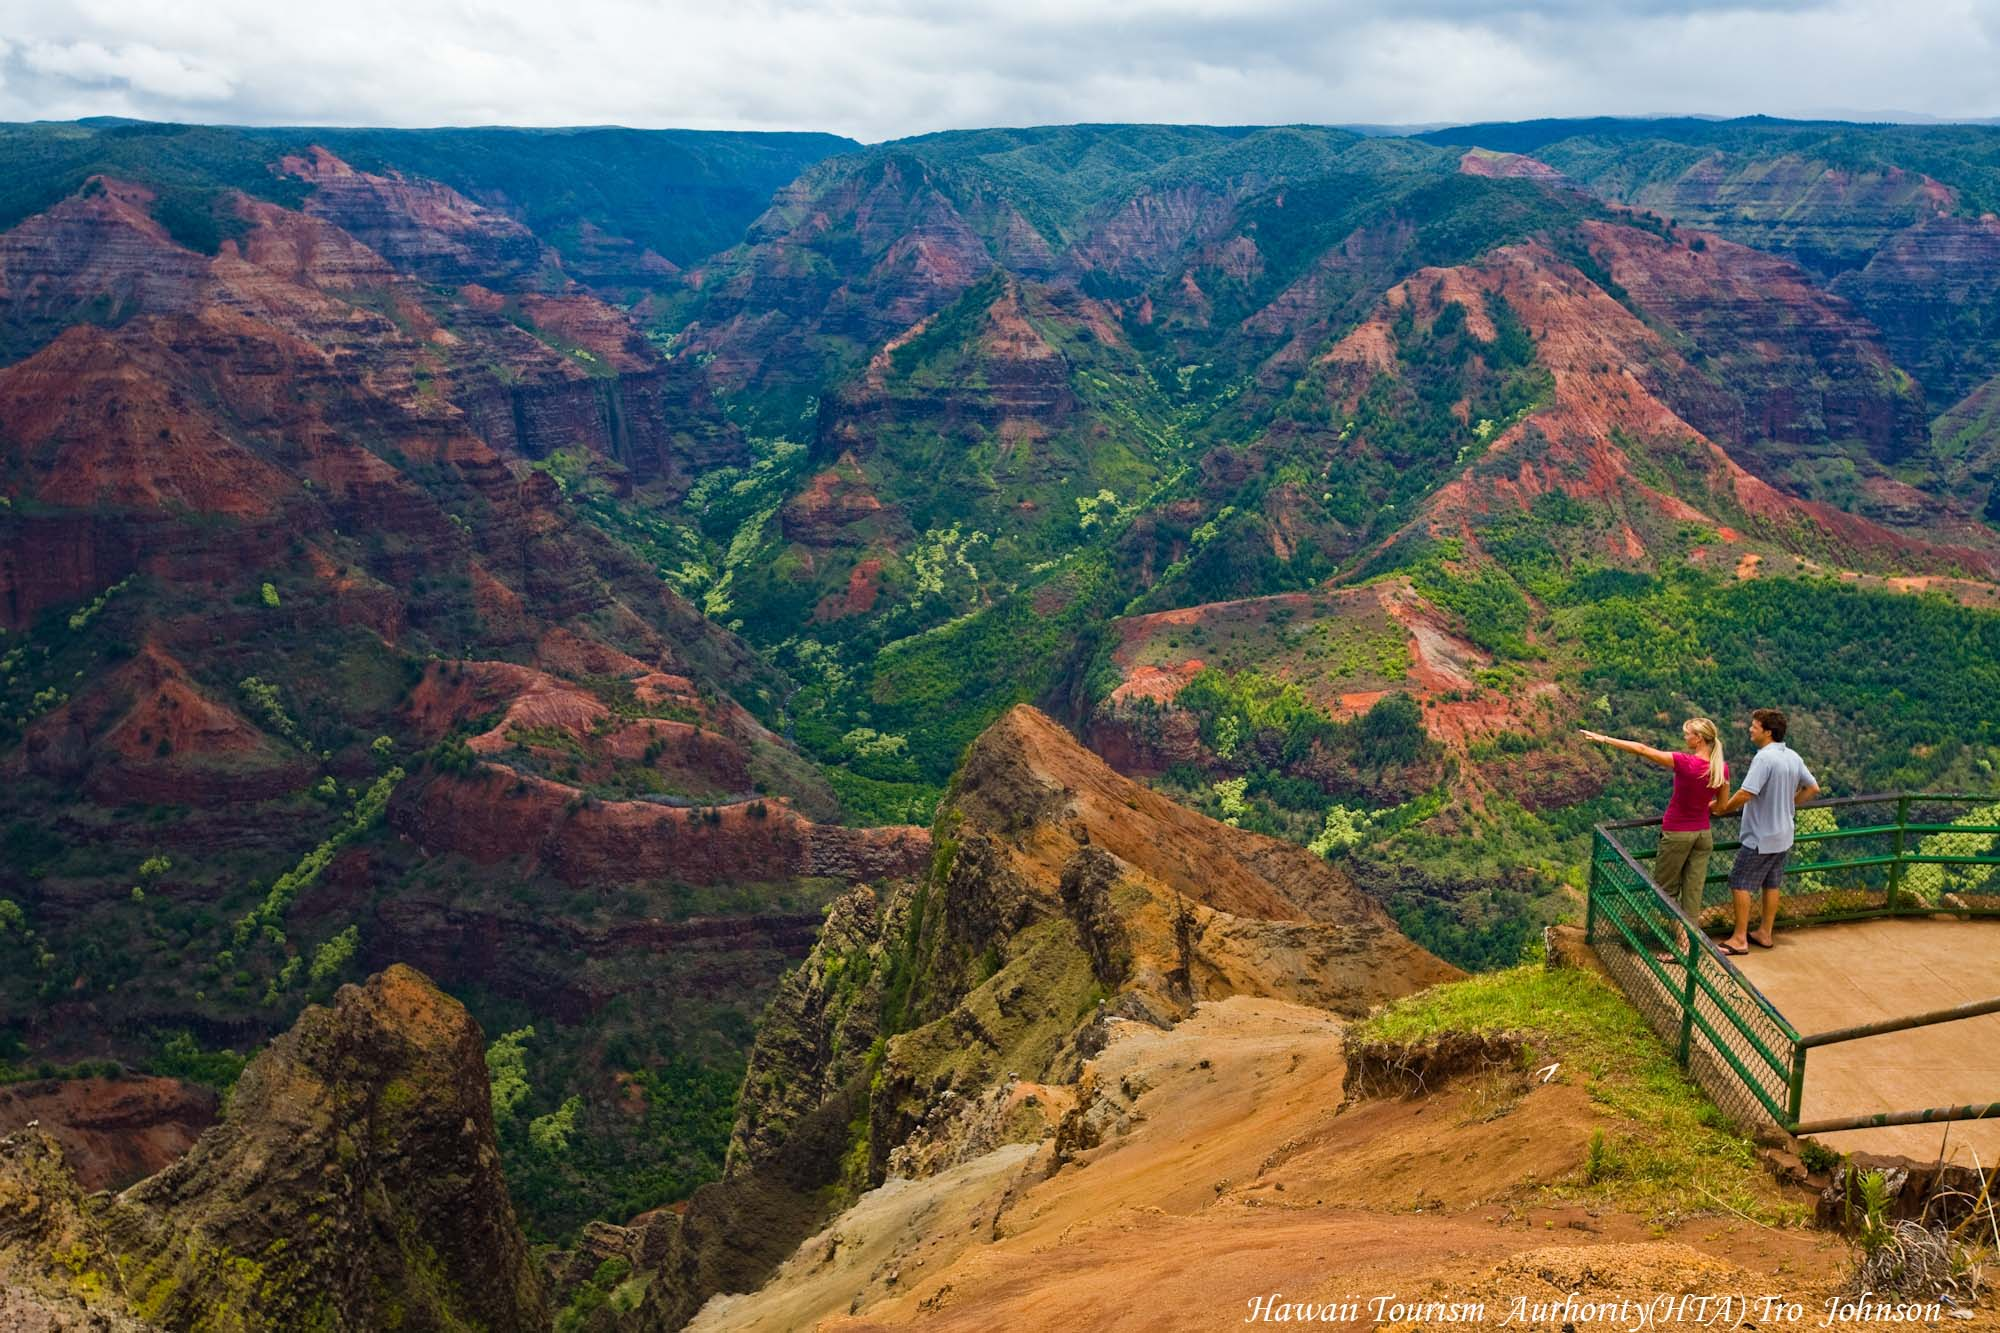 Product Kauai Waimea Canyon & Wailua River